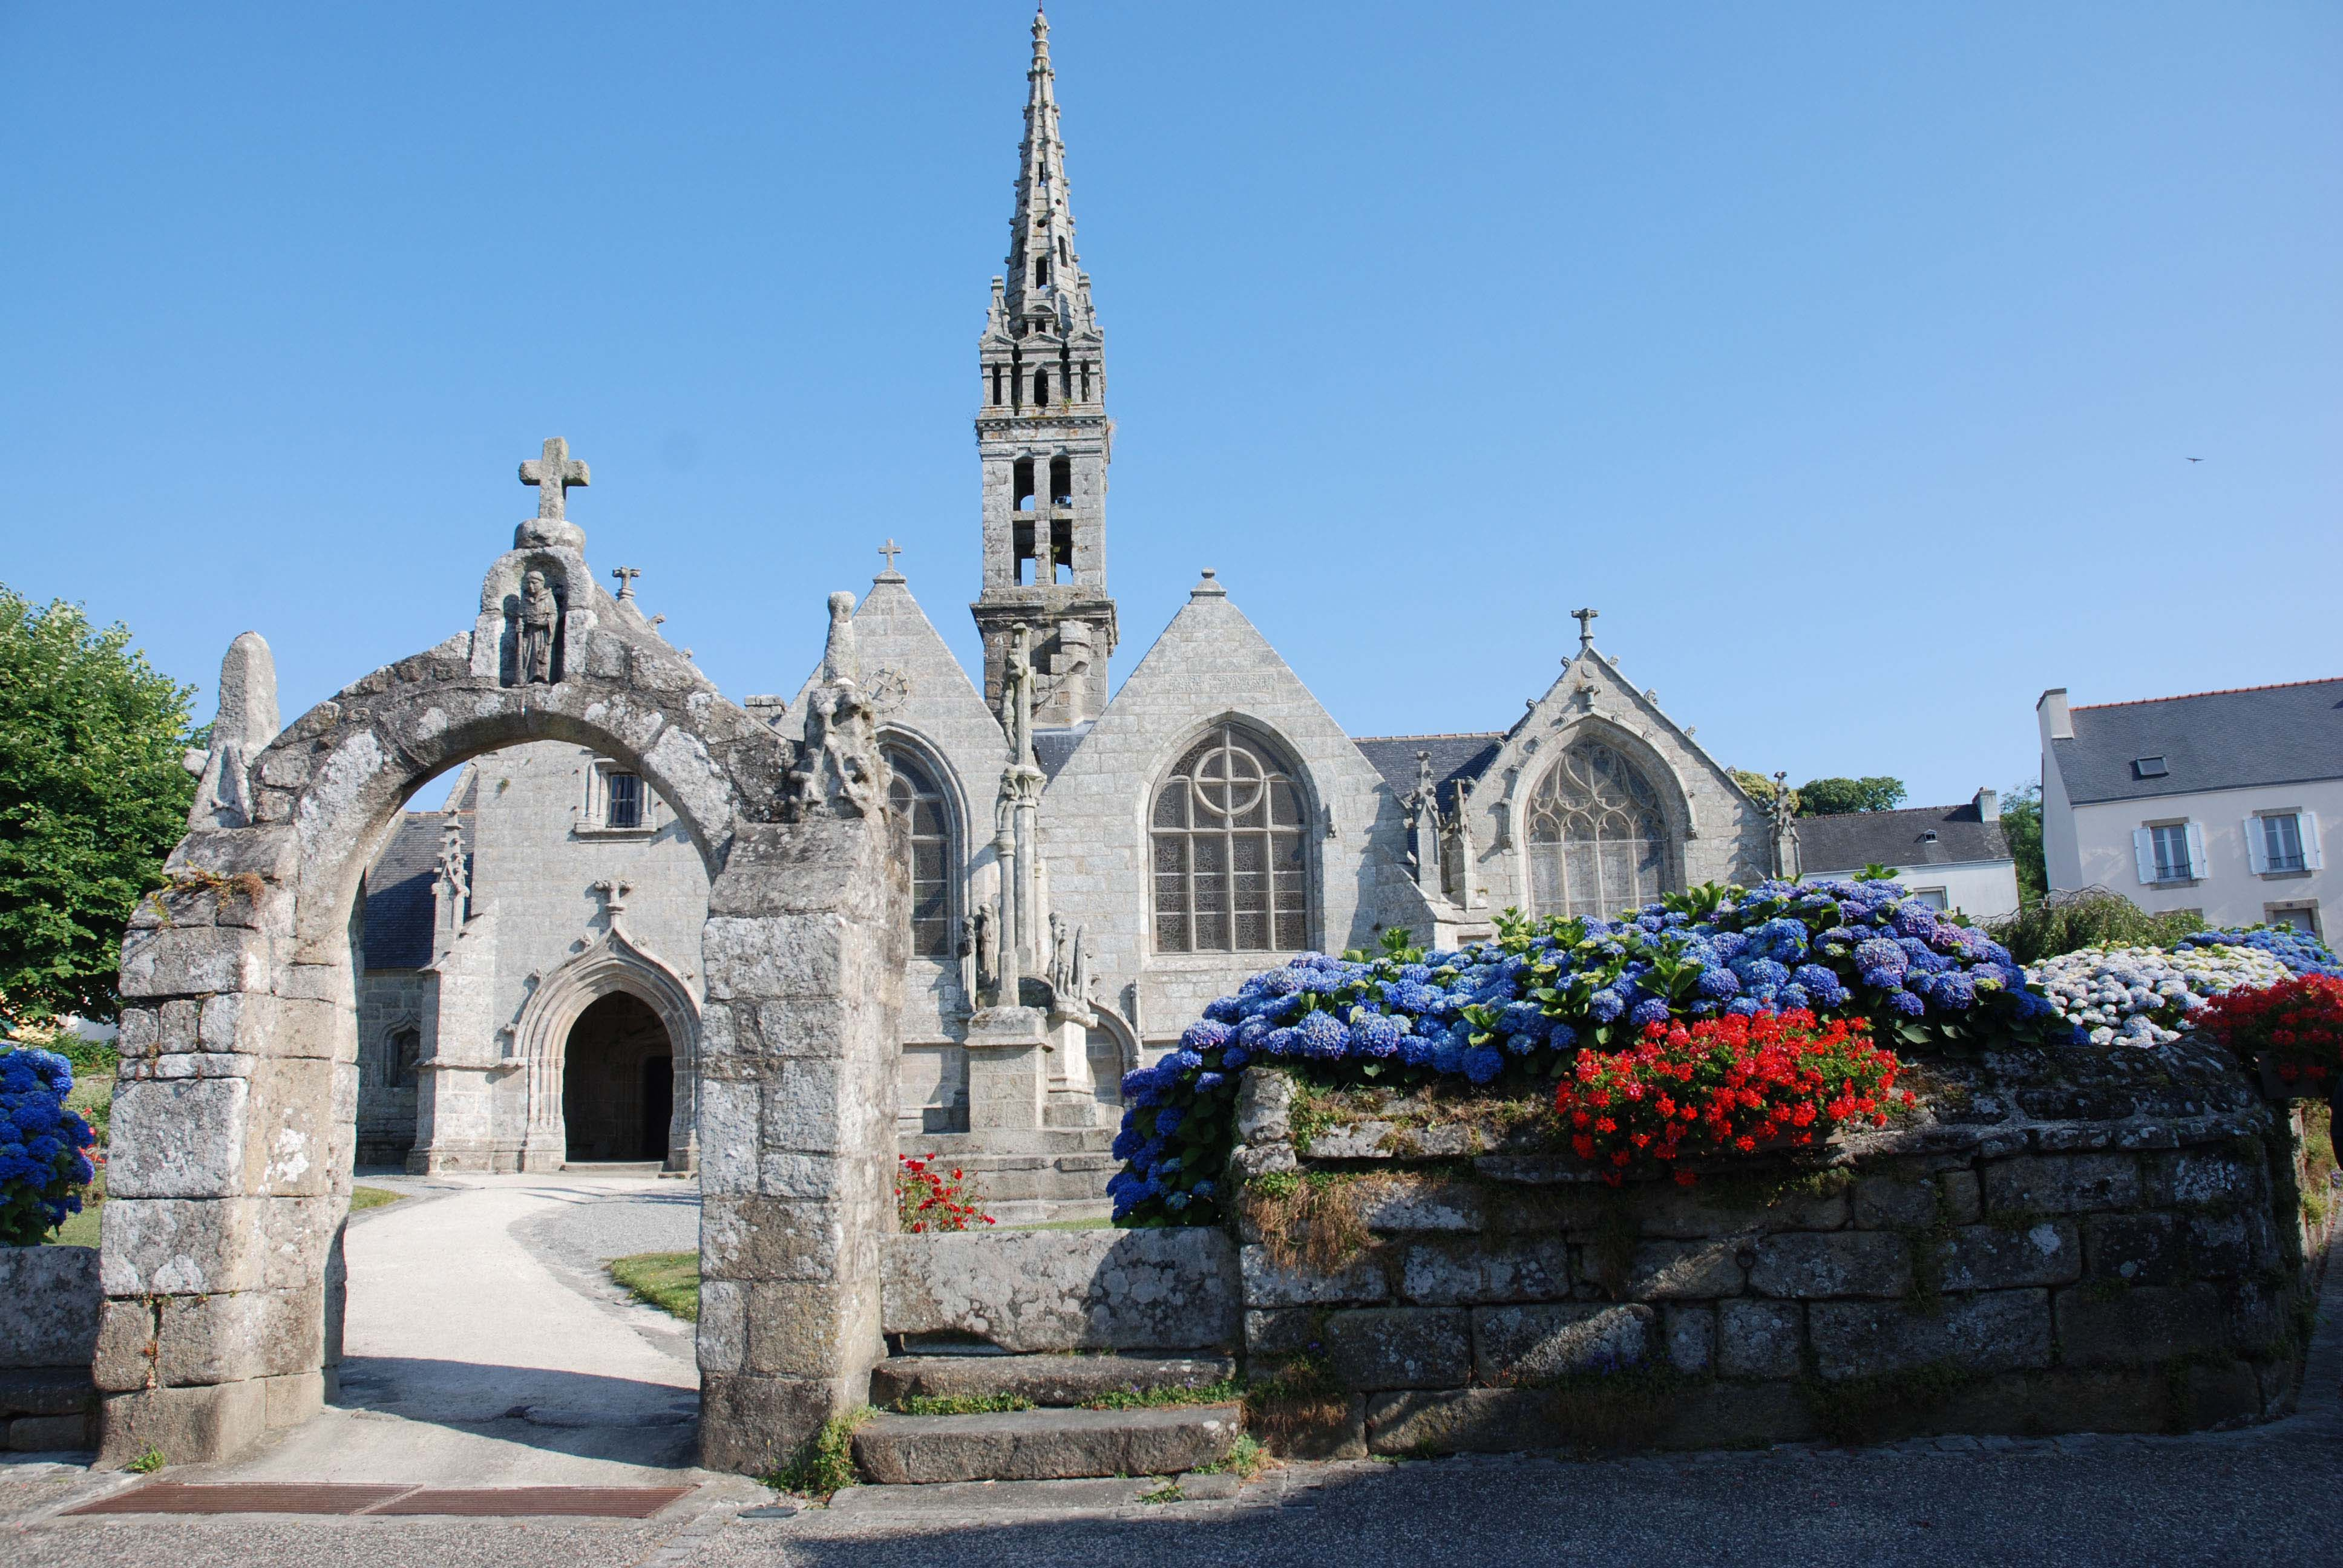 Cycling in Brittany past pretty churches